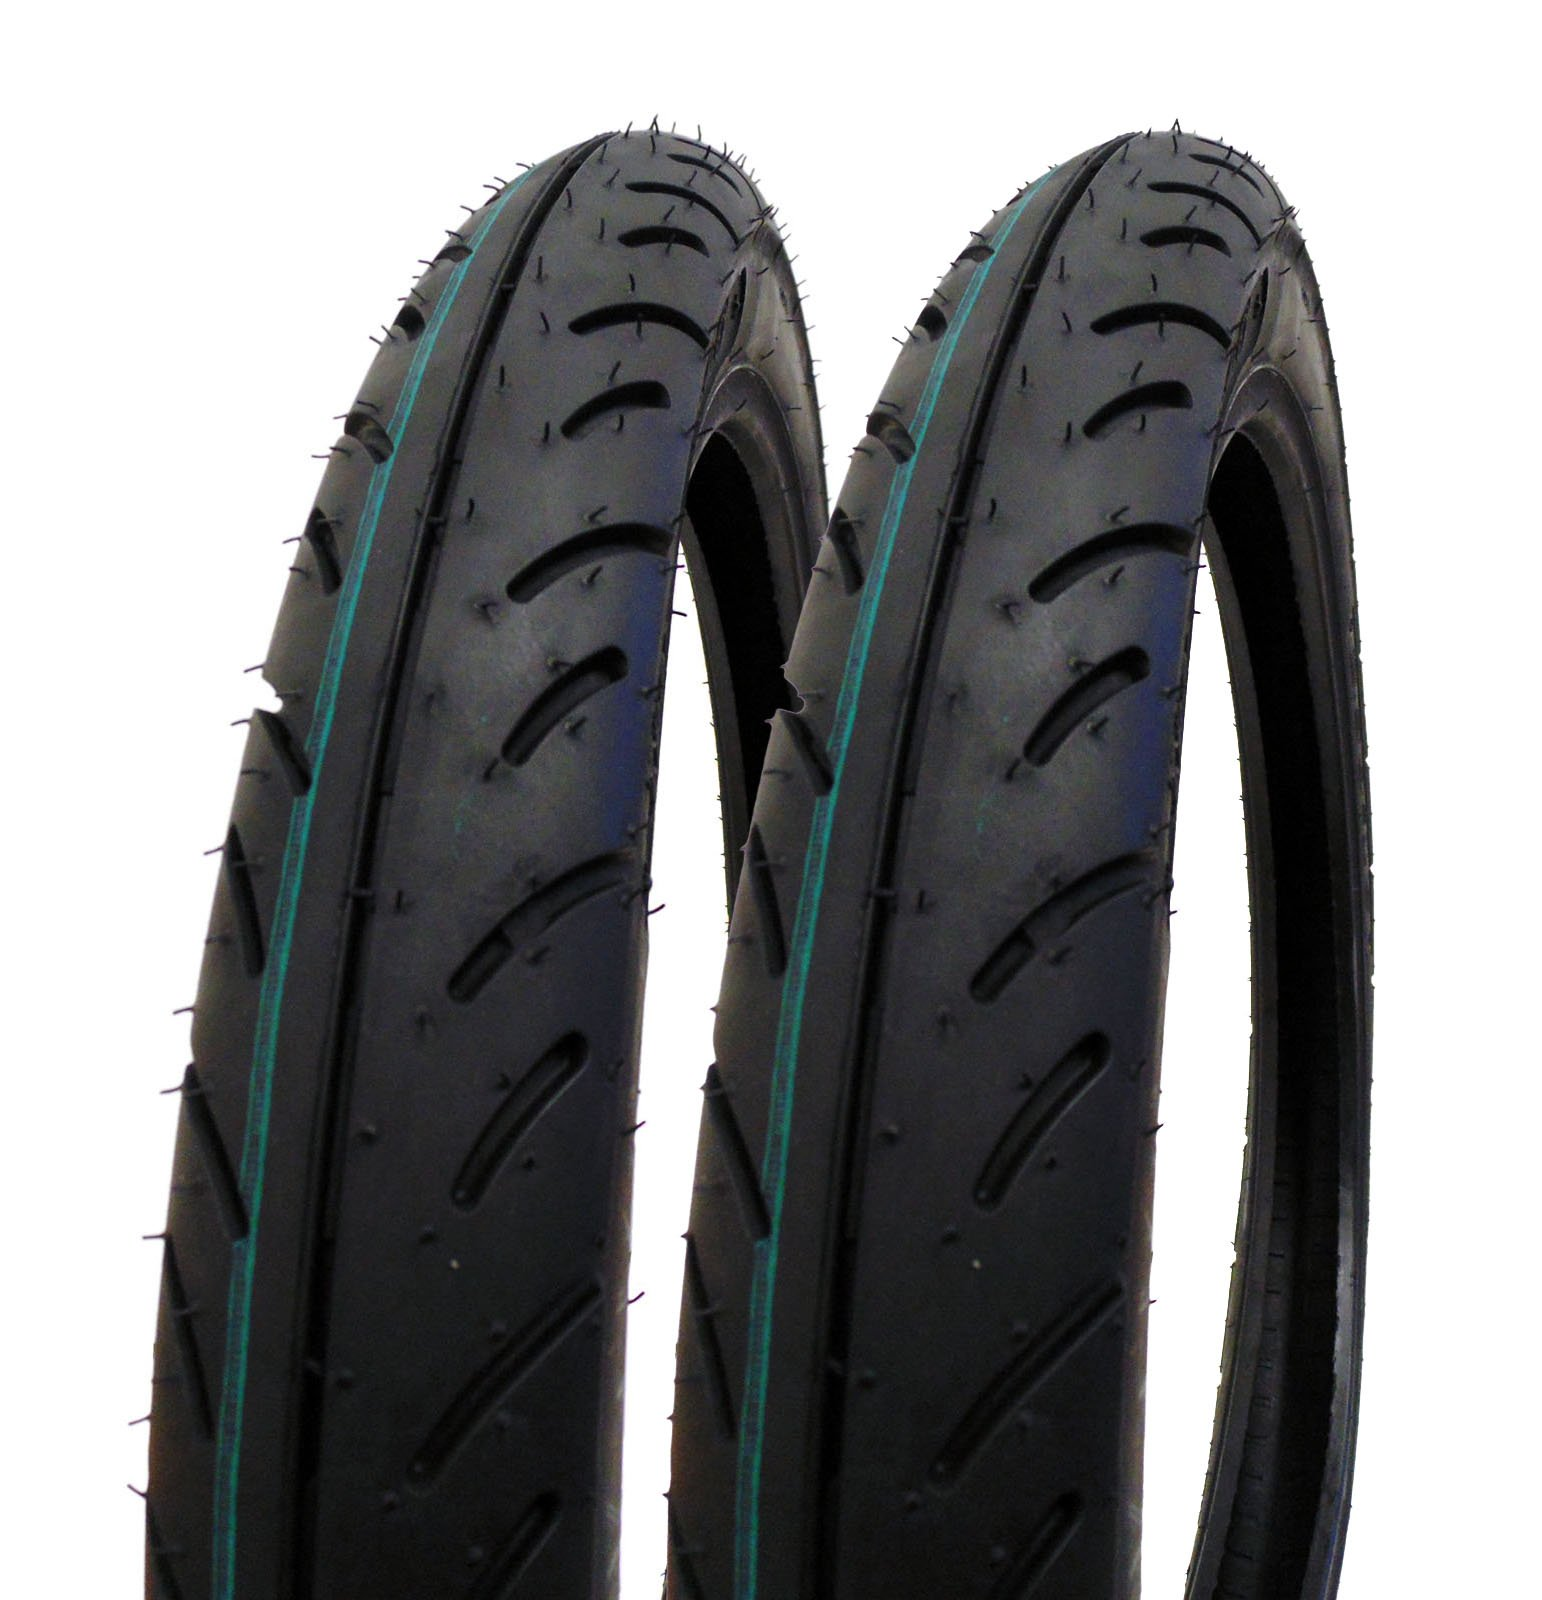 SET OF TWO: Tire 2.50 - 16 (P83) Front/Rear Motorcycle Sport Street Performance Tread